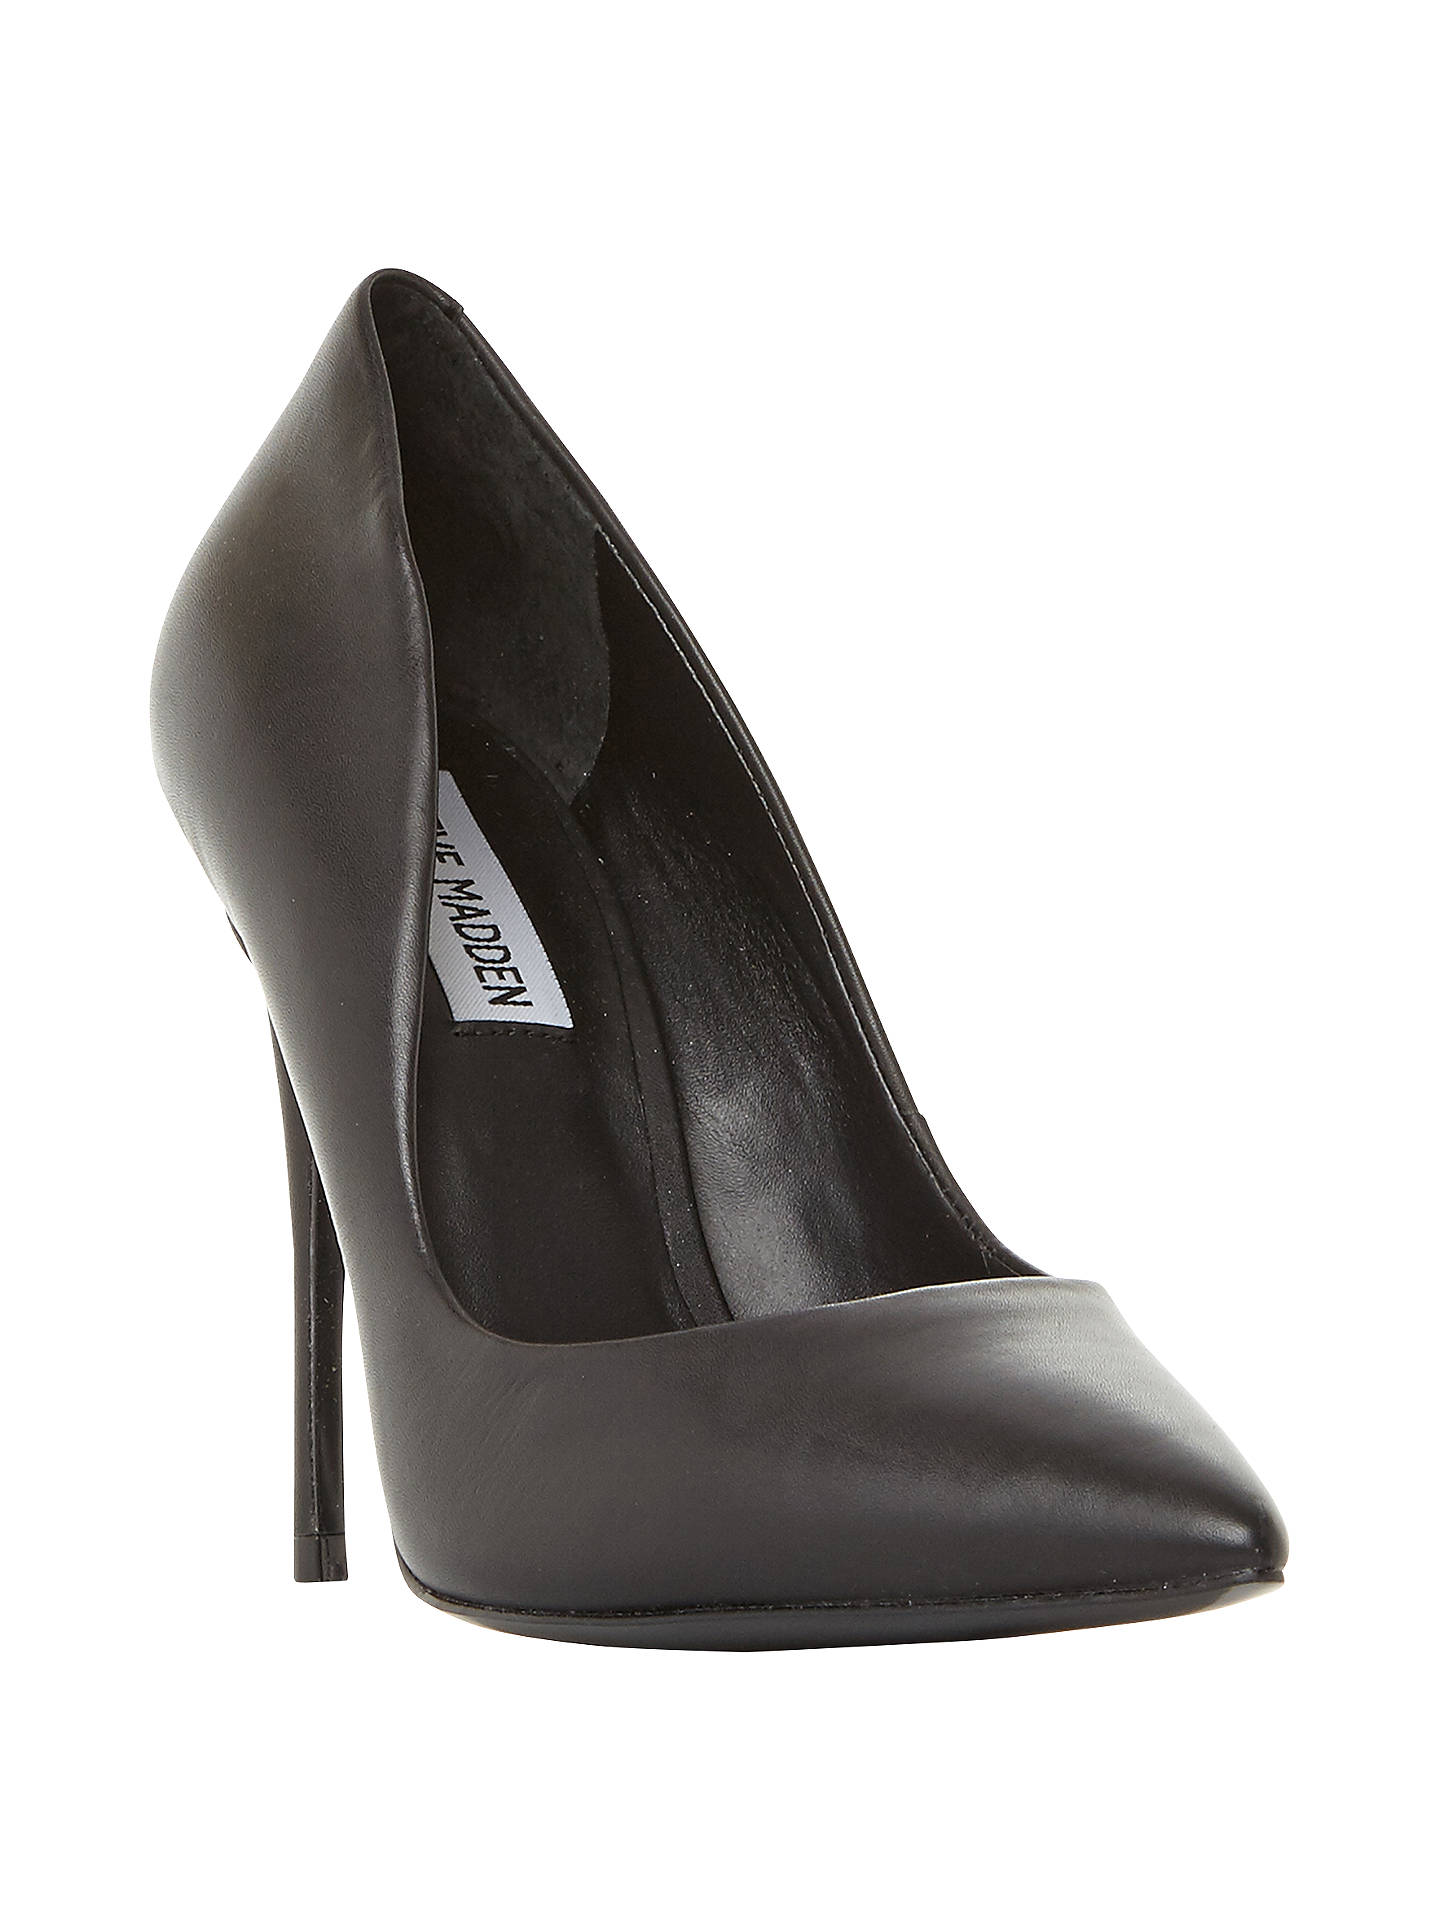 db57924debf5 Steve Madden Daisie Stiletto Heeled Court Shoes at John Lewis   Partners